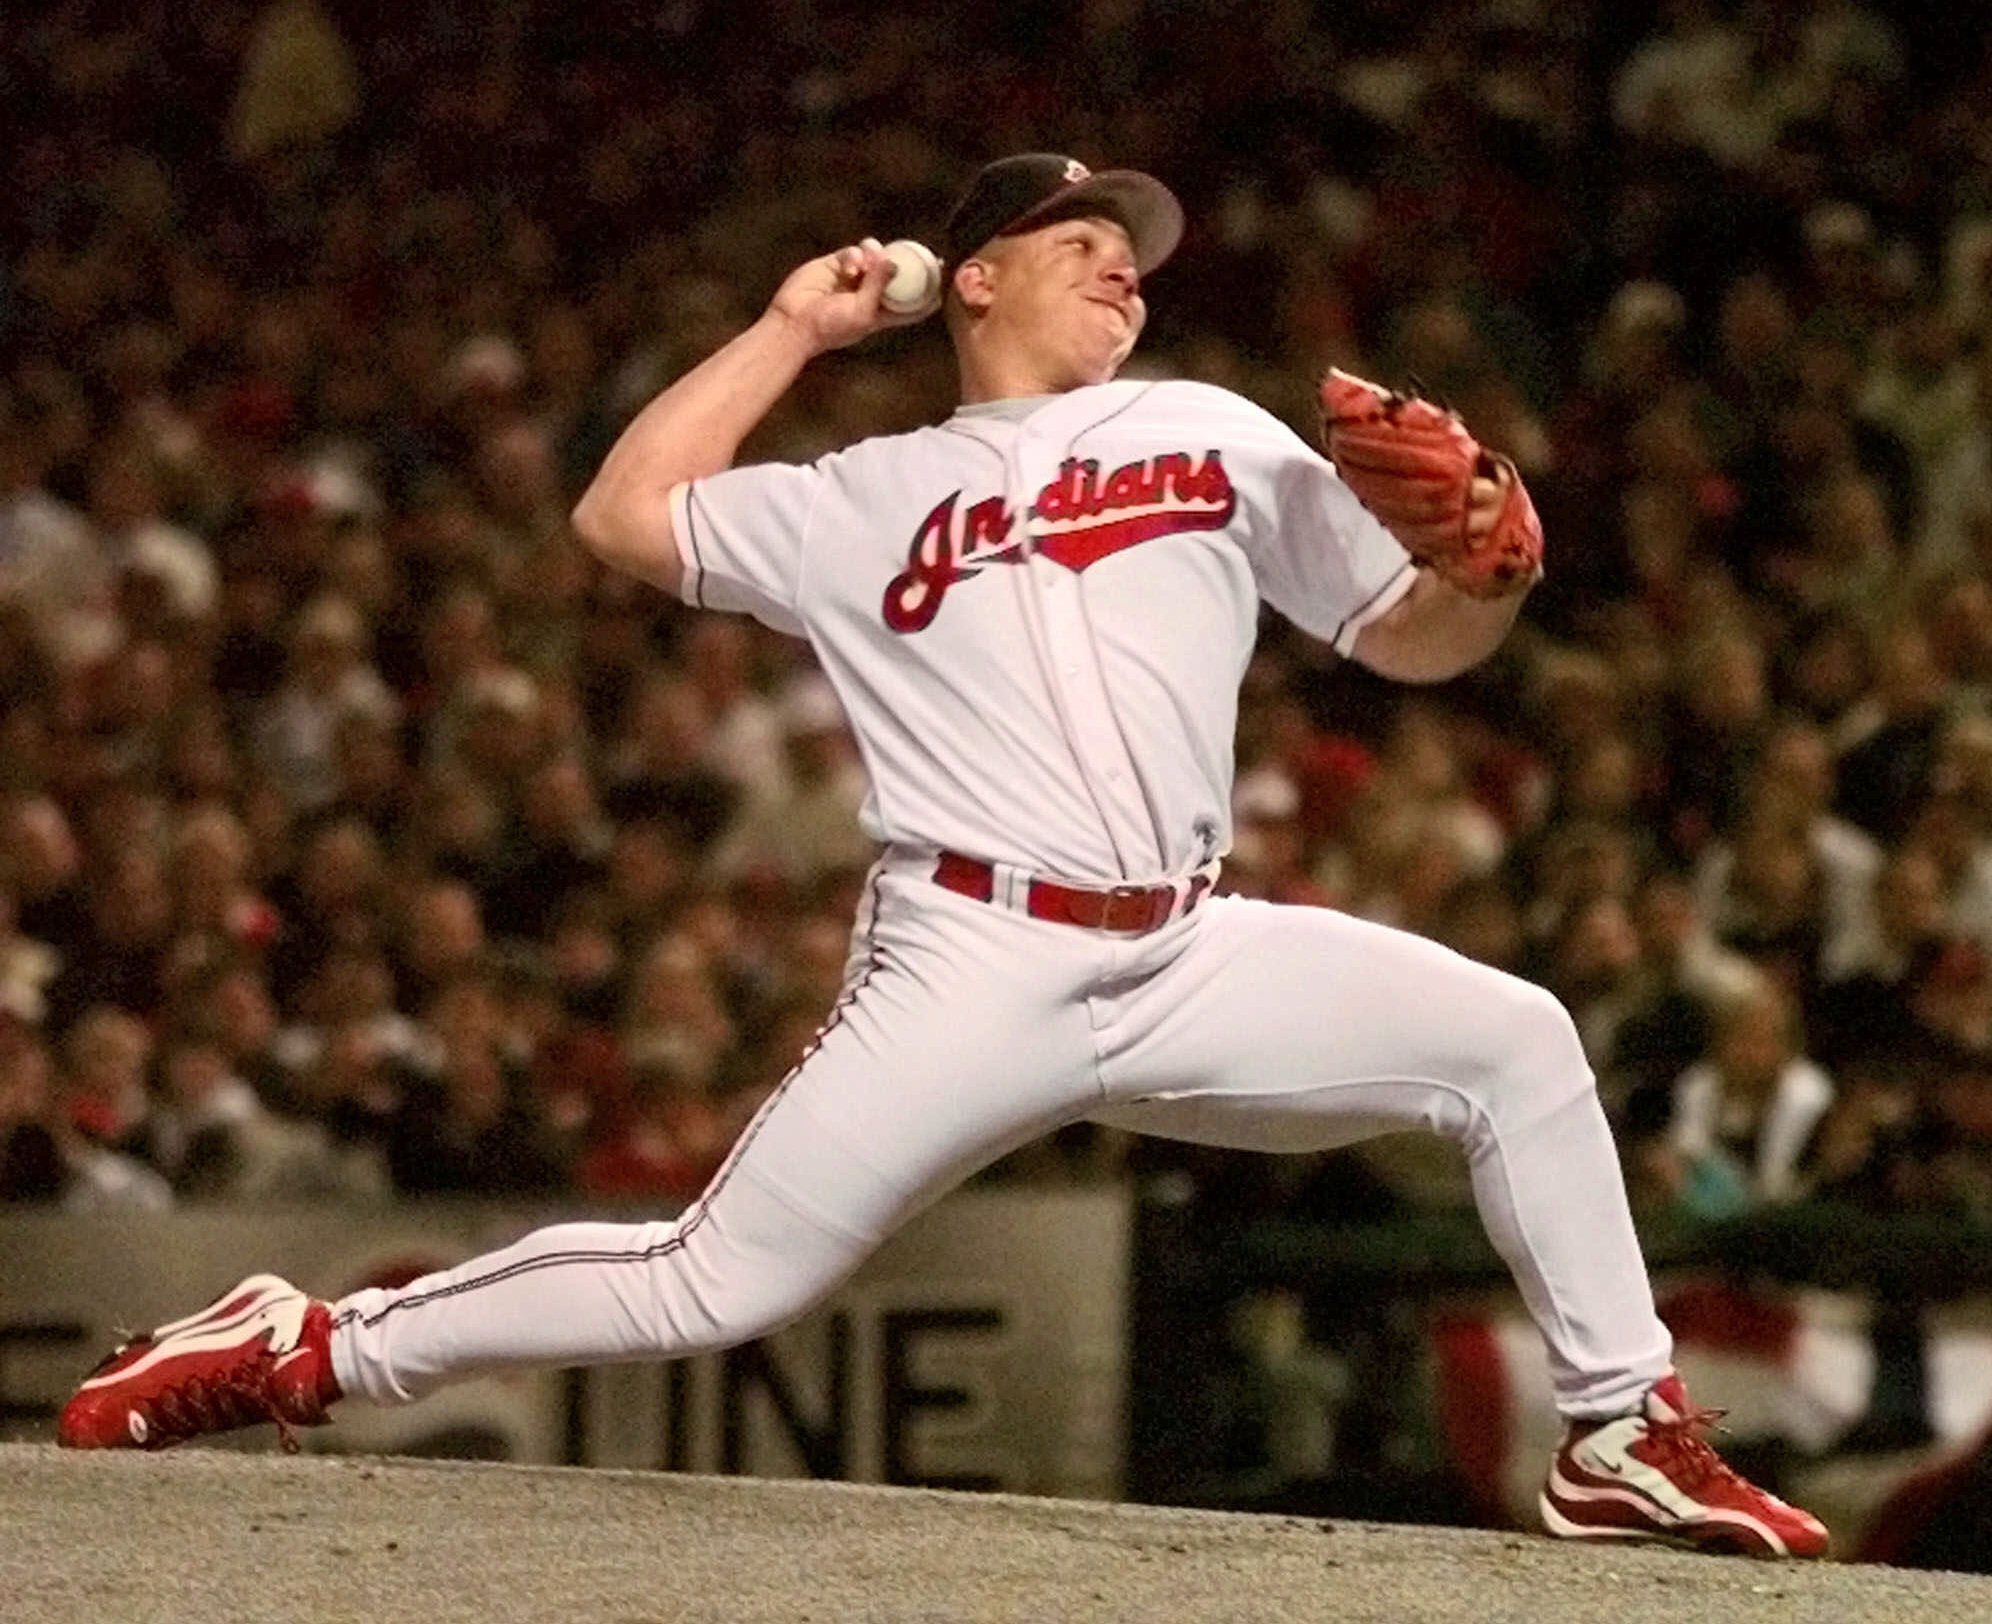 FILE - In this Oct. 9, 1998, file photo, Cleveland Indians pitcher Bartolo Colon delivers a pitch against the New York Yankees in the first inning of Game 3 of the American League championship series in Cleveland. Colon turns 42 on Sunday, and in his 18th